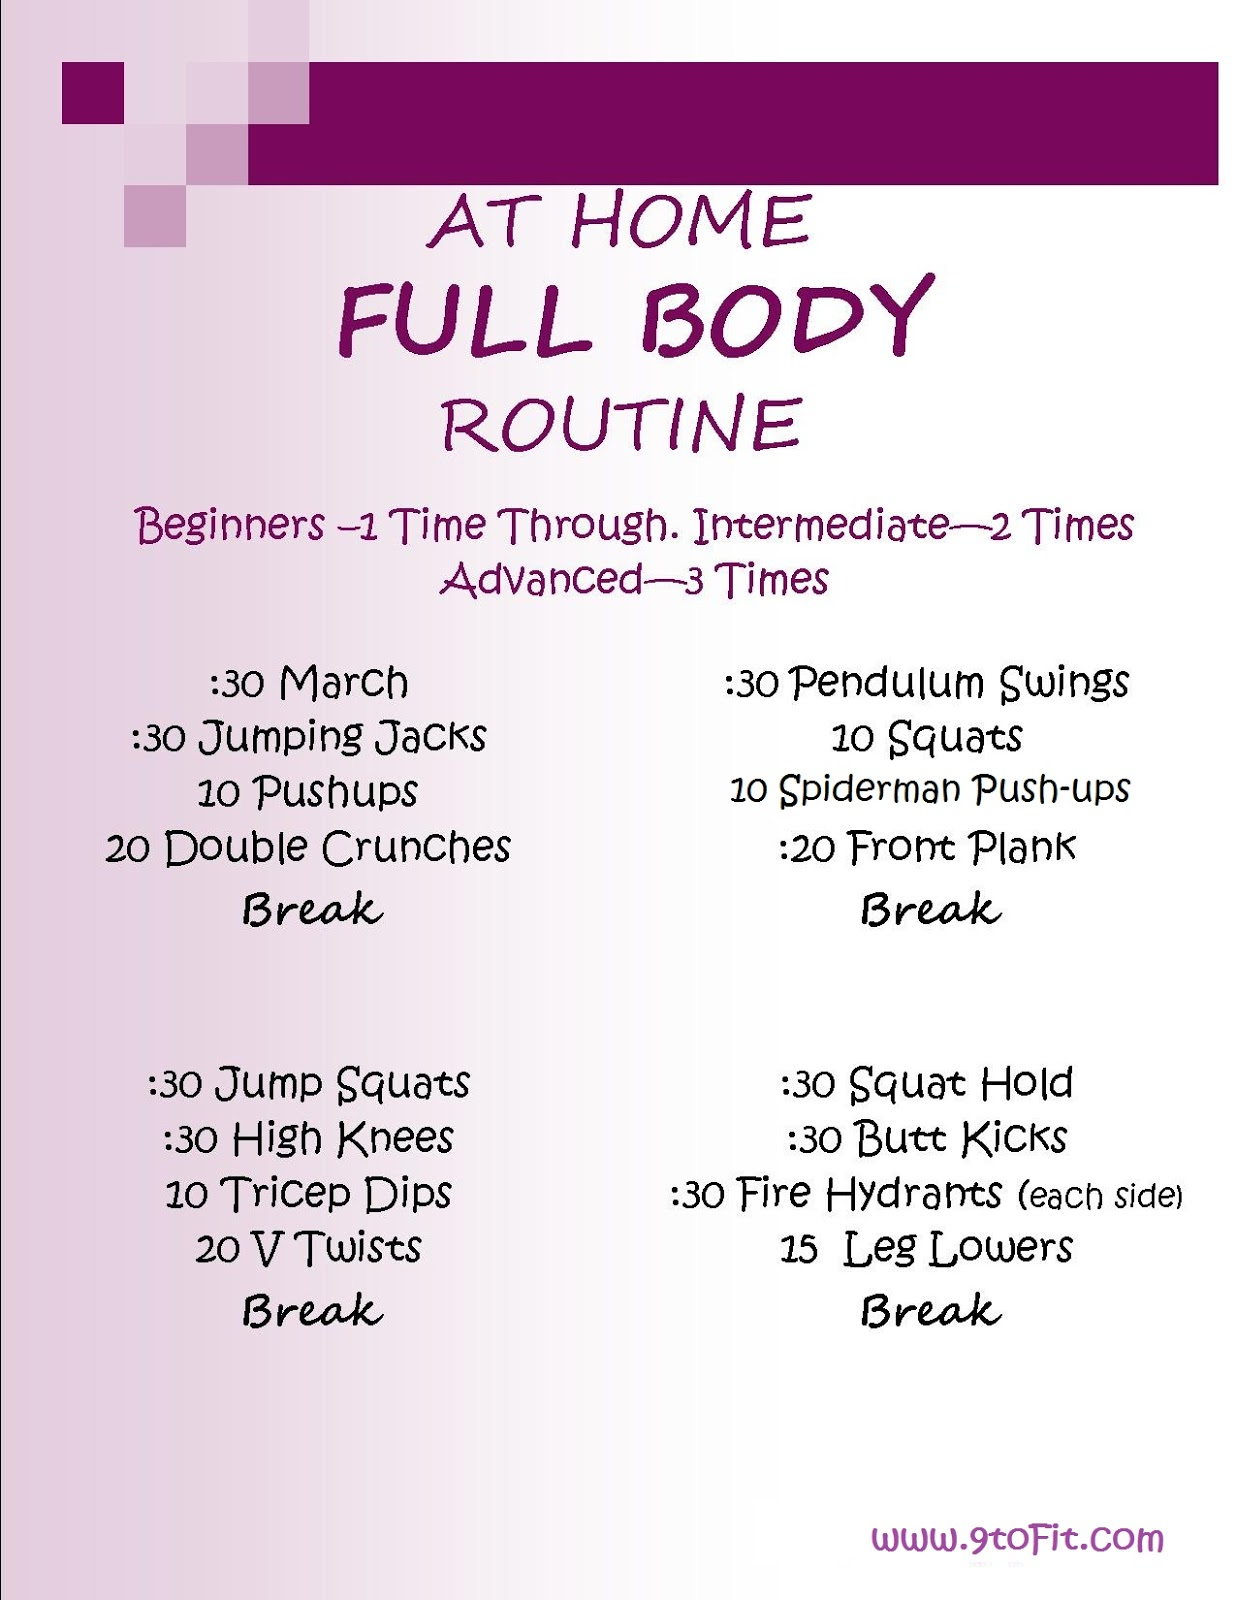 Full Body Workout At Home Videogrowth Hormone Deficiencytrinny And Susannah Shapewear